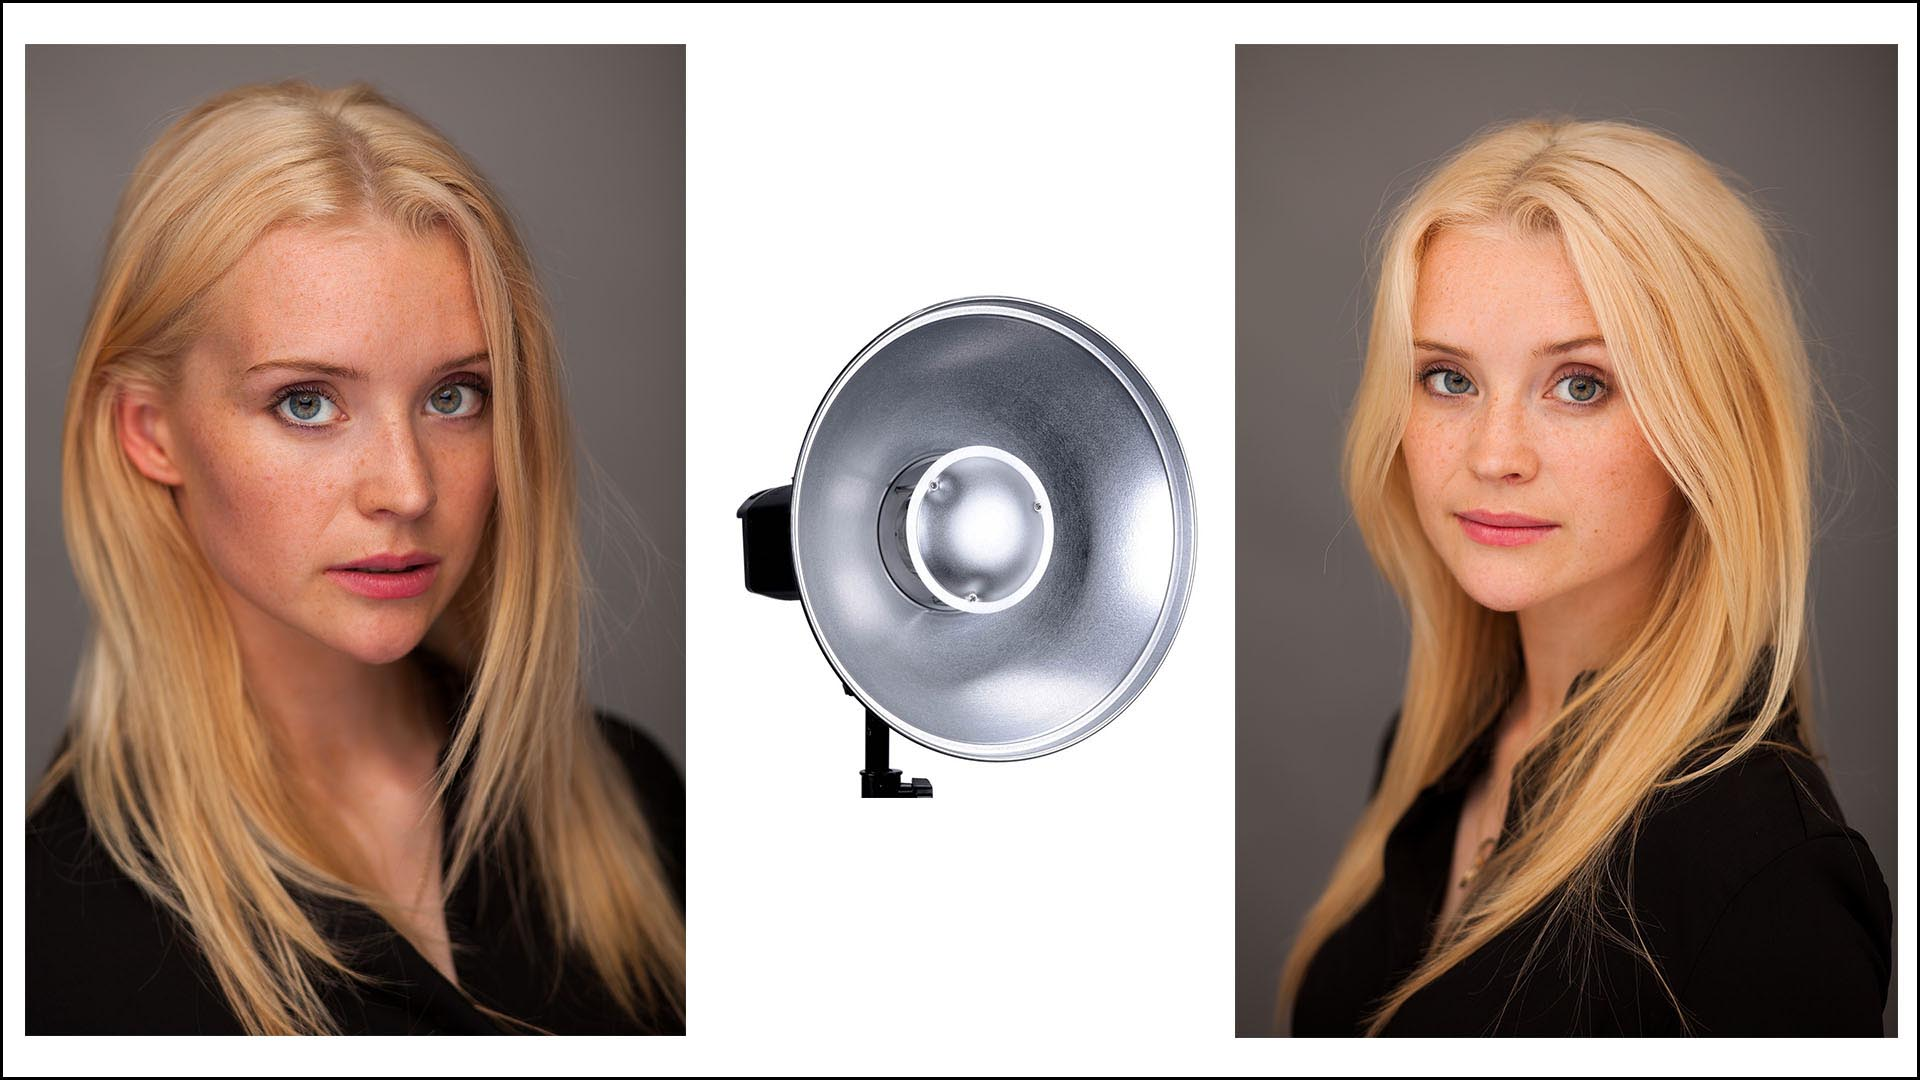 Lesson 14 – Using a Beauty Dish - A beauty dish is used a lot in fashion or model portraiture. In this lesson we'll look at the effects of beauty dishes and how you can mix this effect with reflectors to enhance subtle details in the face. We'll also be looking at how to create a neutral grey background without having one!